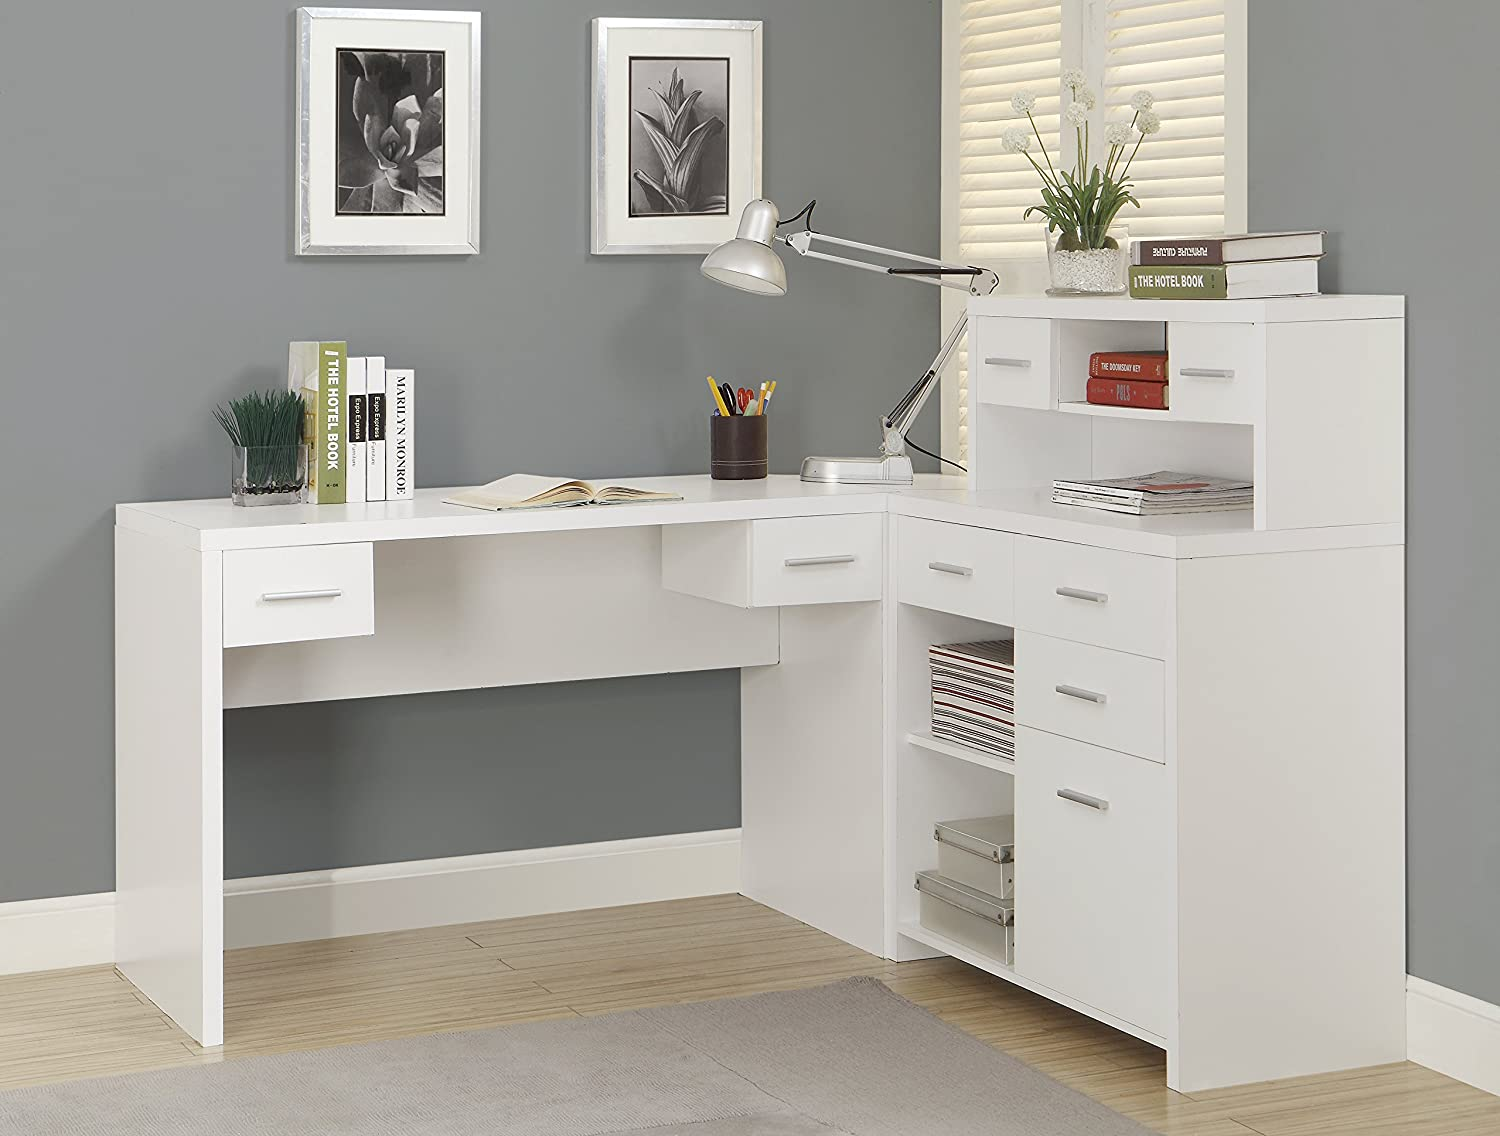 Amazon com  Monarch Hollow Core  L  Shaped Home Office Desk  White  Kitchen    Dining. Amazon com  Monarch Hollow Core  L  Shaped Home Office Desk  White